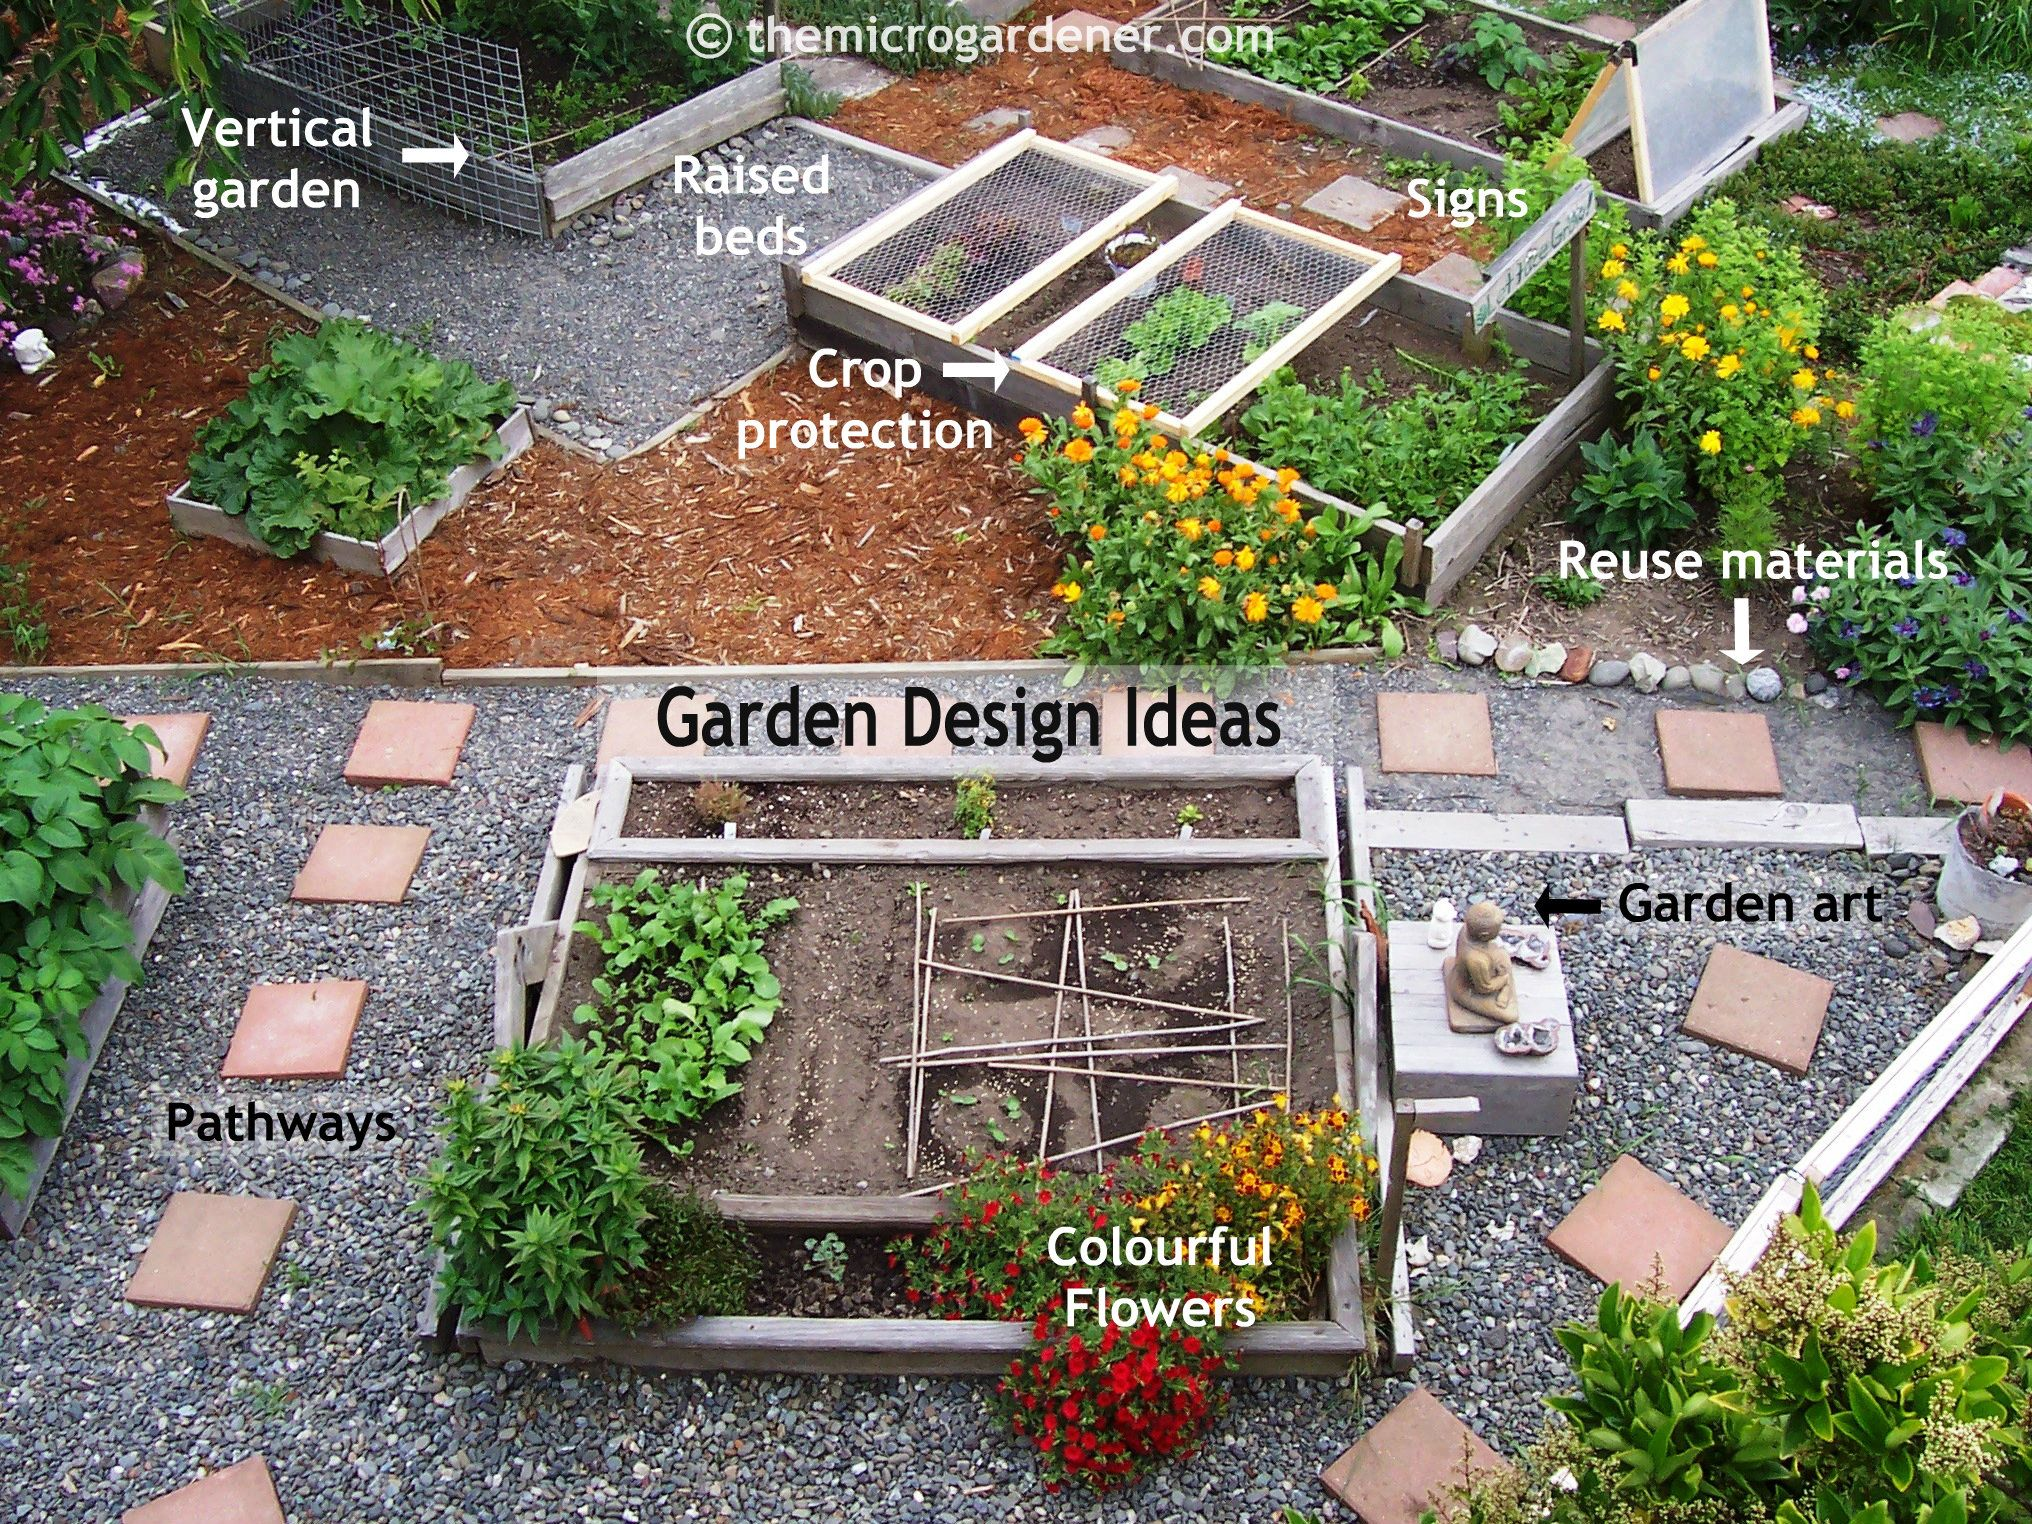 Small garden design ideas on pinterest vertical gardens for Small space backyard ideas